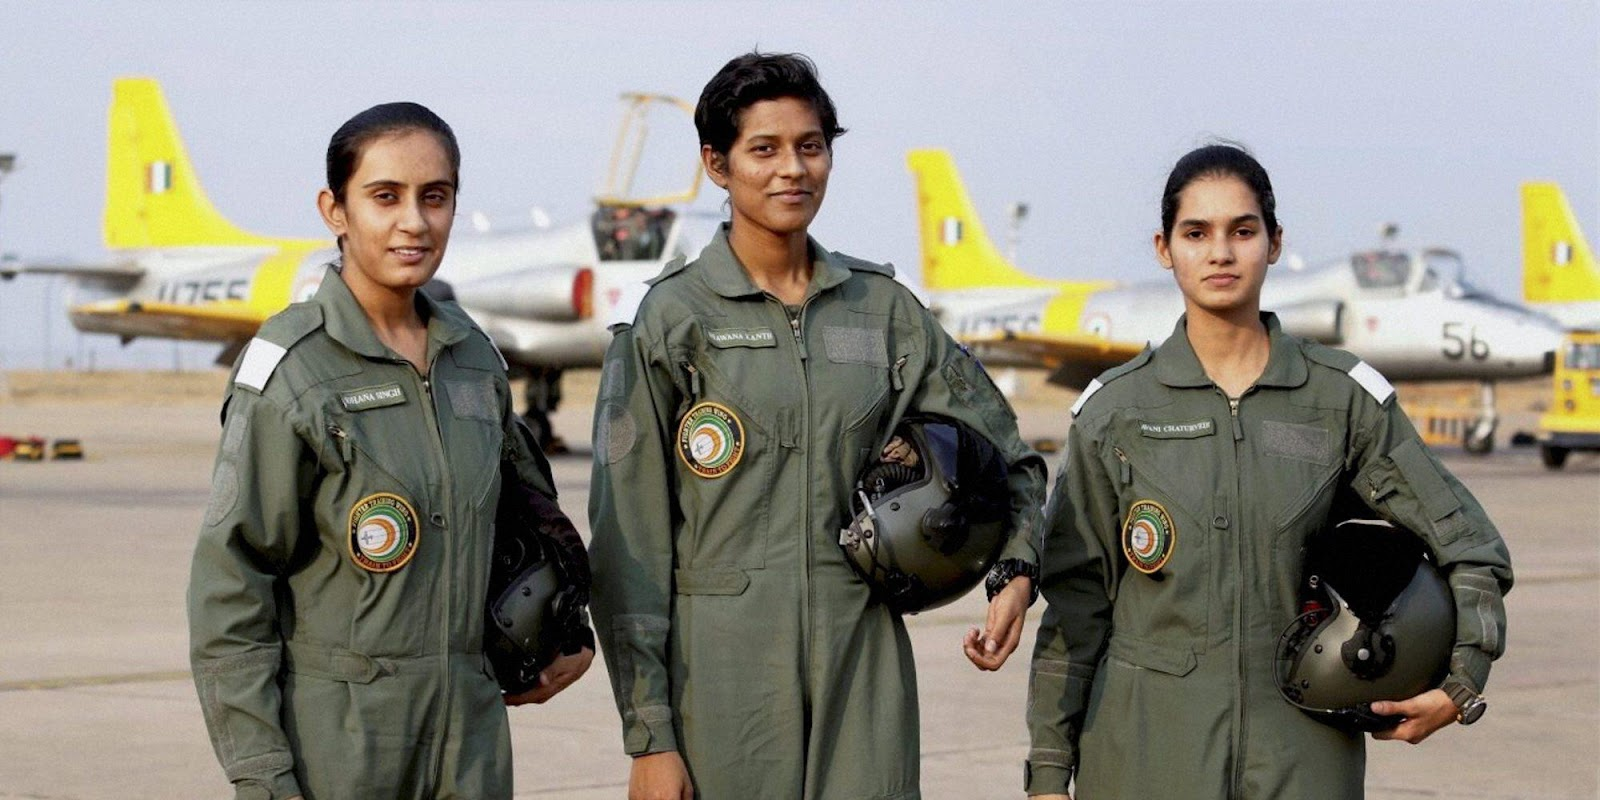 C:\Users\user\Desktop\Reacho\pics\o-INDIAN-AIR-FORCE-WOMEN-facebook.jpg